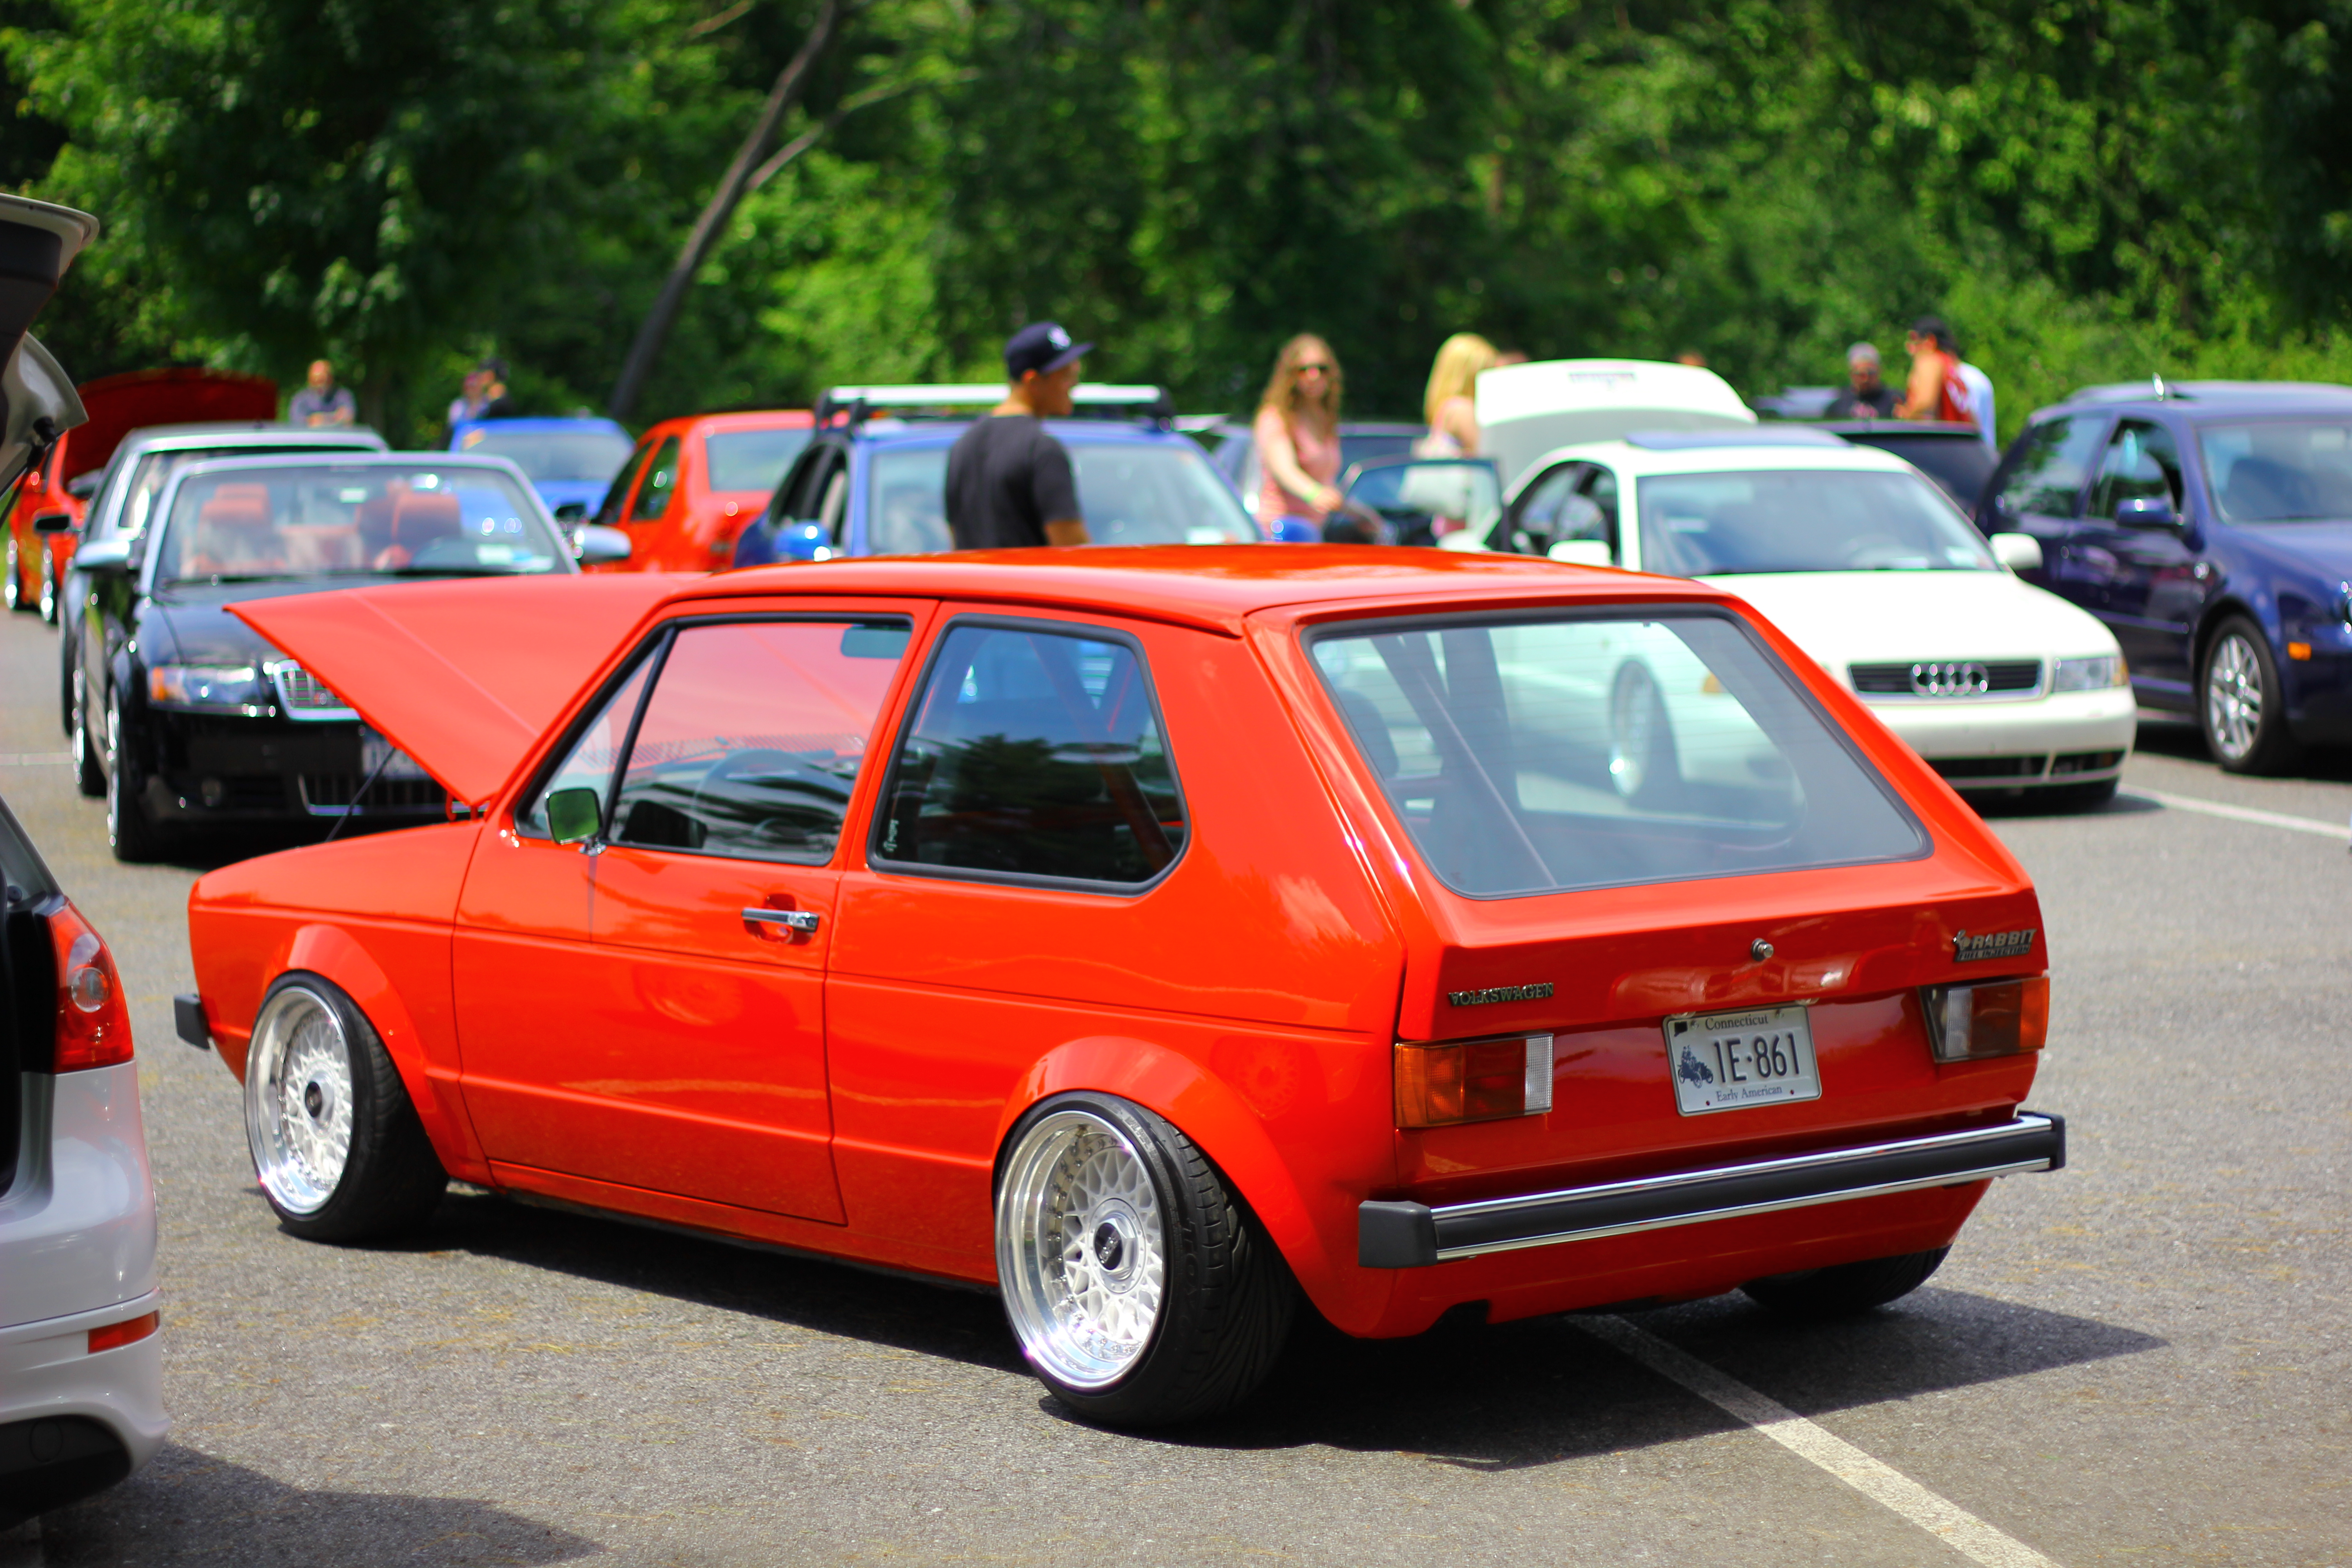 Bddwk as well Cabriolet furthermore Volkswagen Golf Gti W Concept likewise Hqdefault in addition Vw Golf Gti Mki. on vw golf mk1 1975